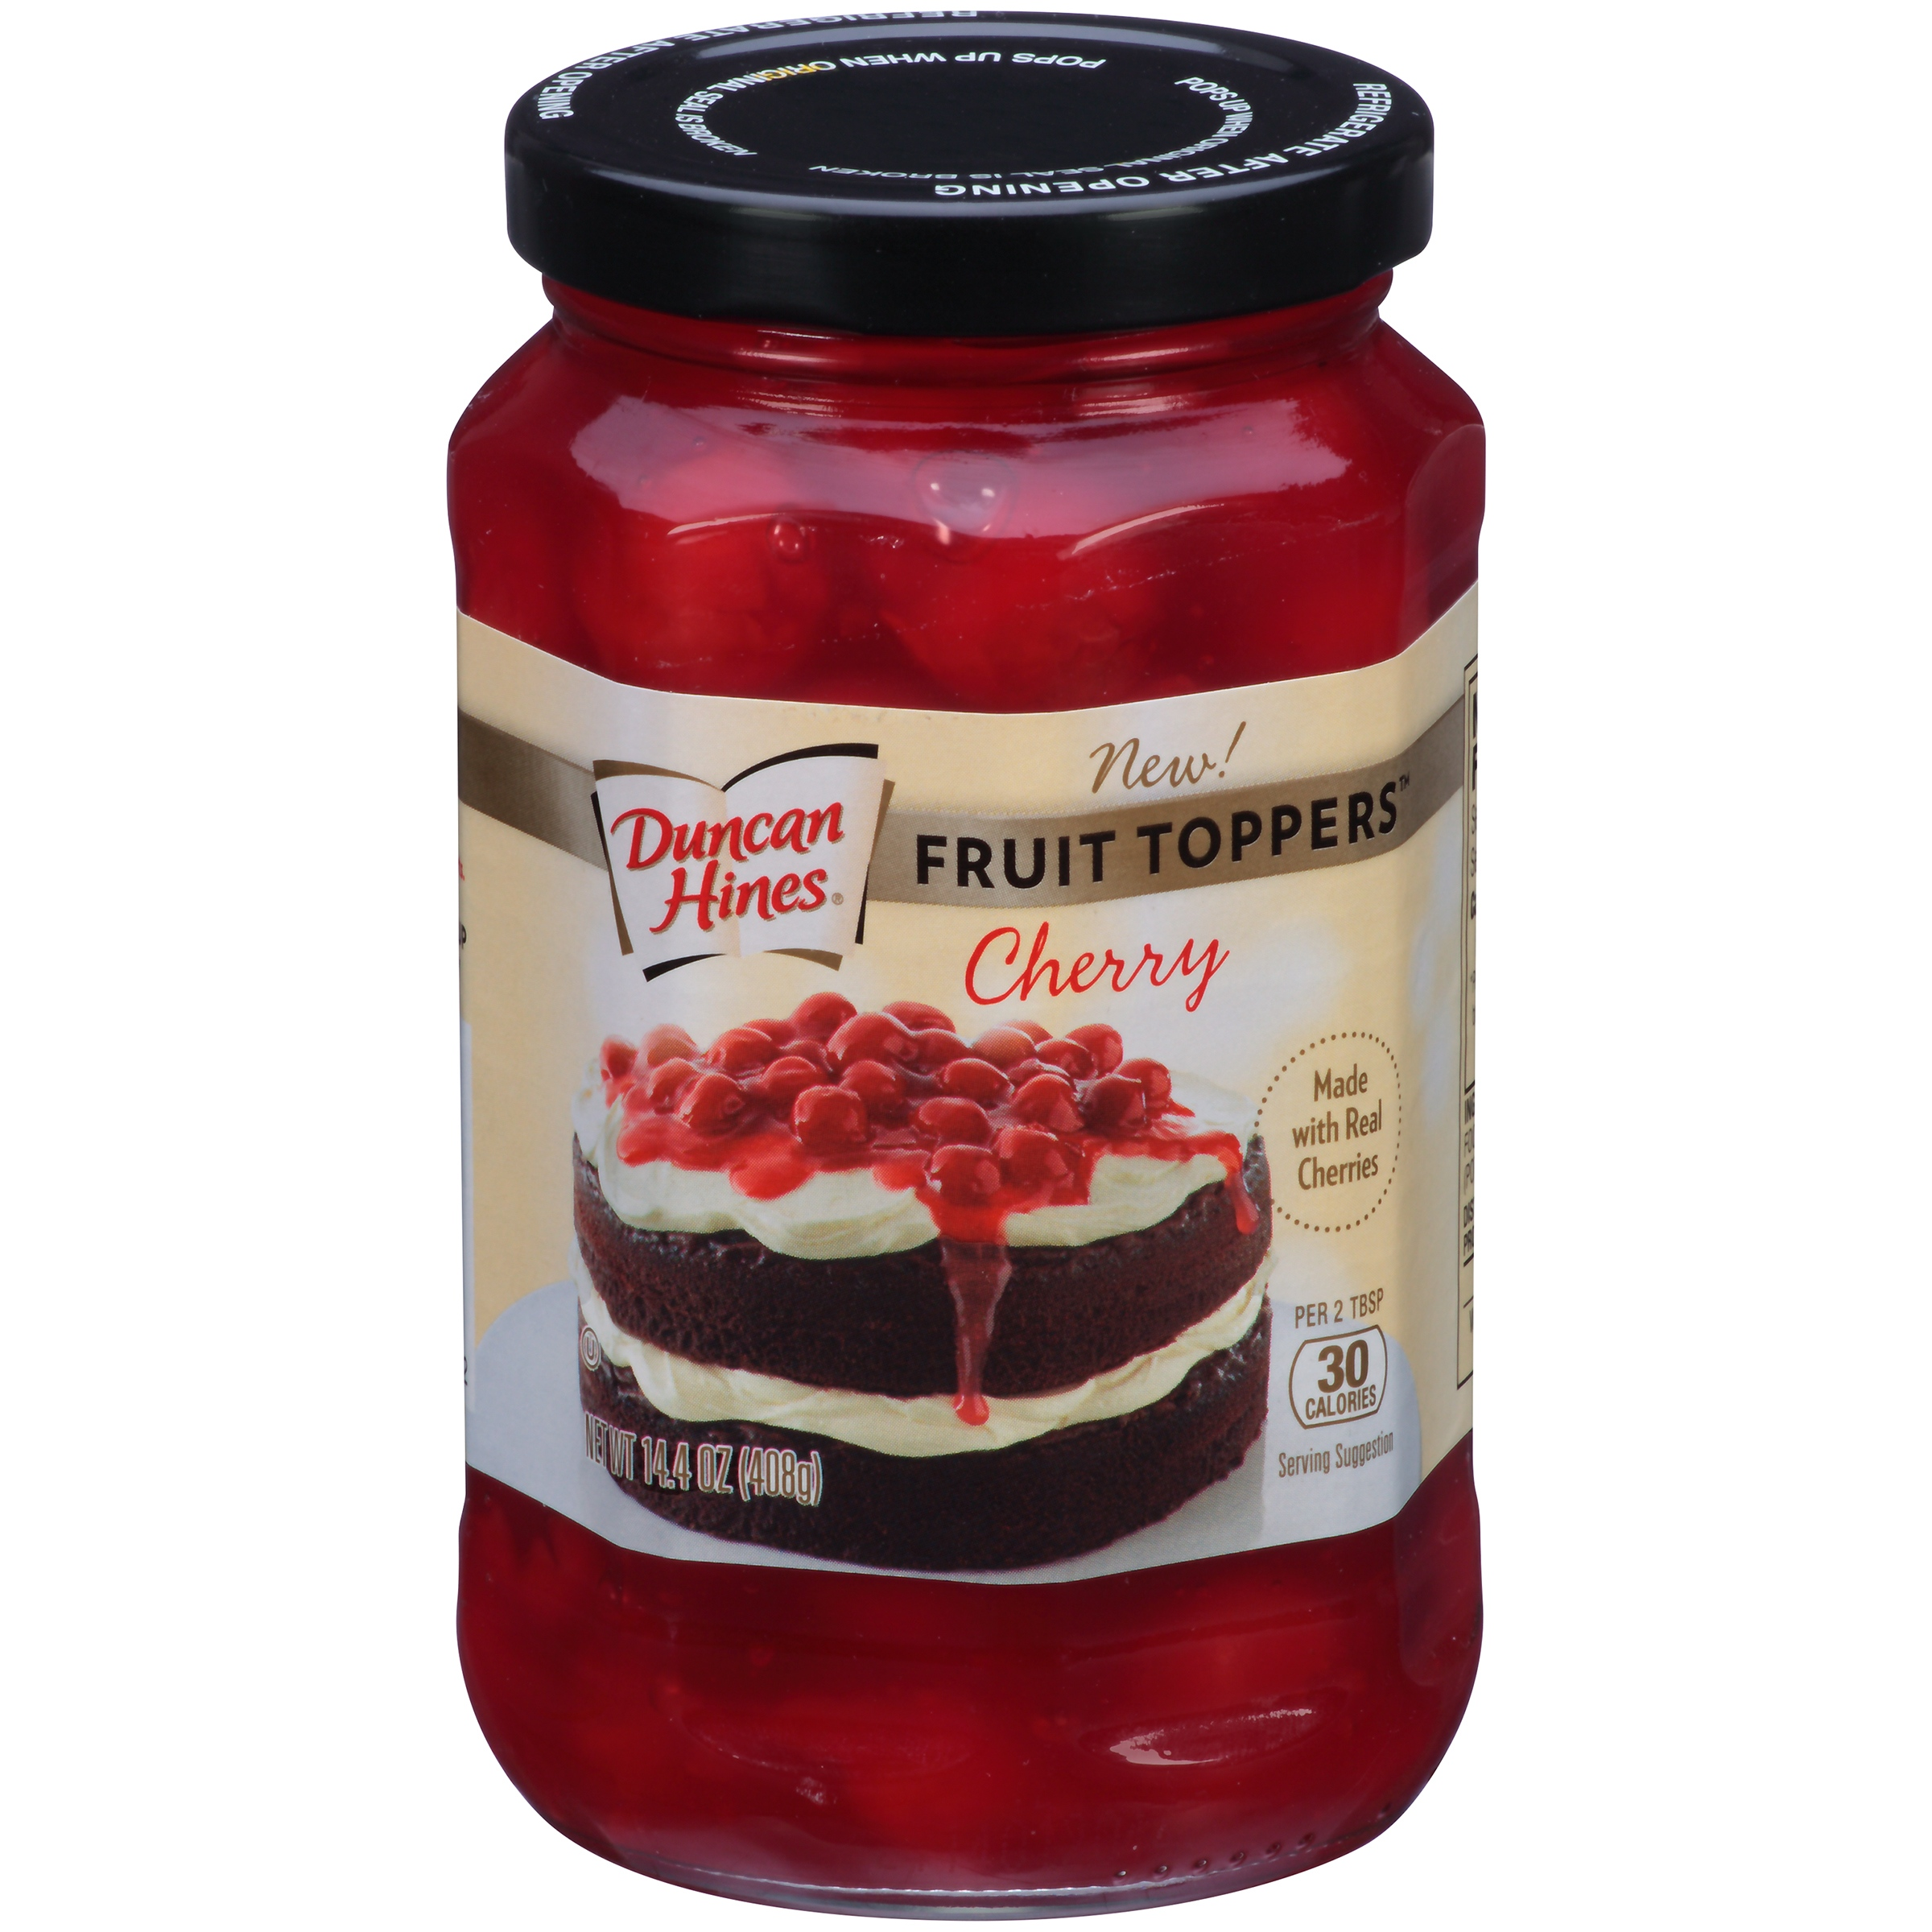 Duncan Hines Fruit Toppers Cherry Dessert Topping, 14.4 oz by Pinnacle Foods